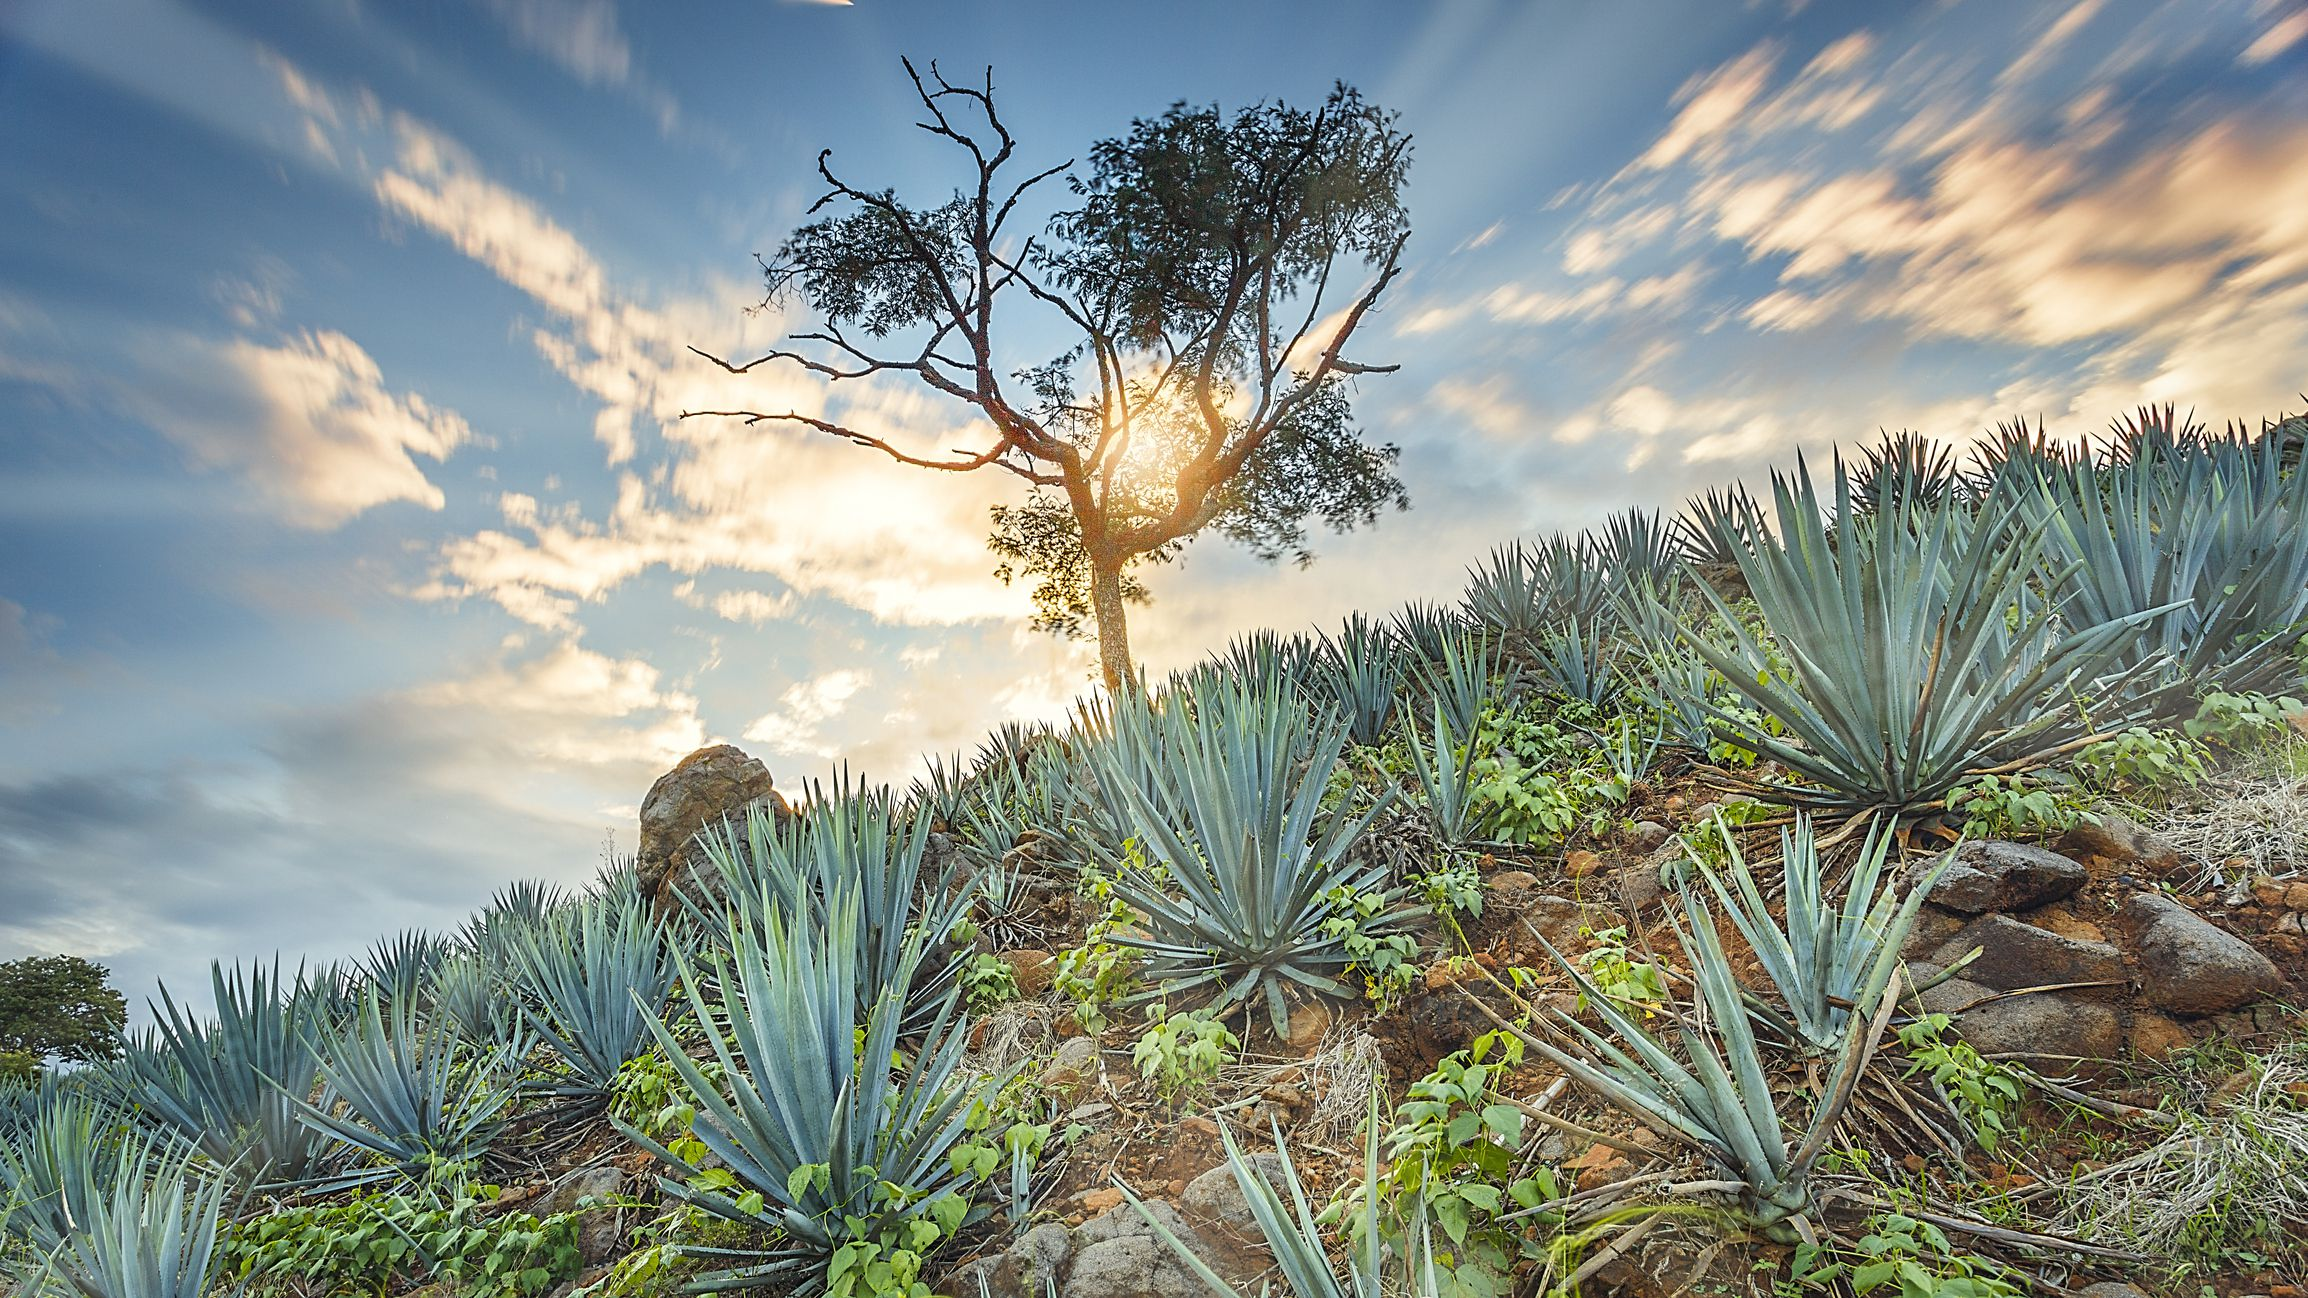 Things To Do In Tequila Jalisco Mexico